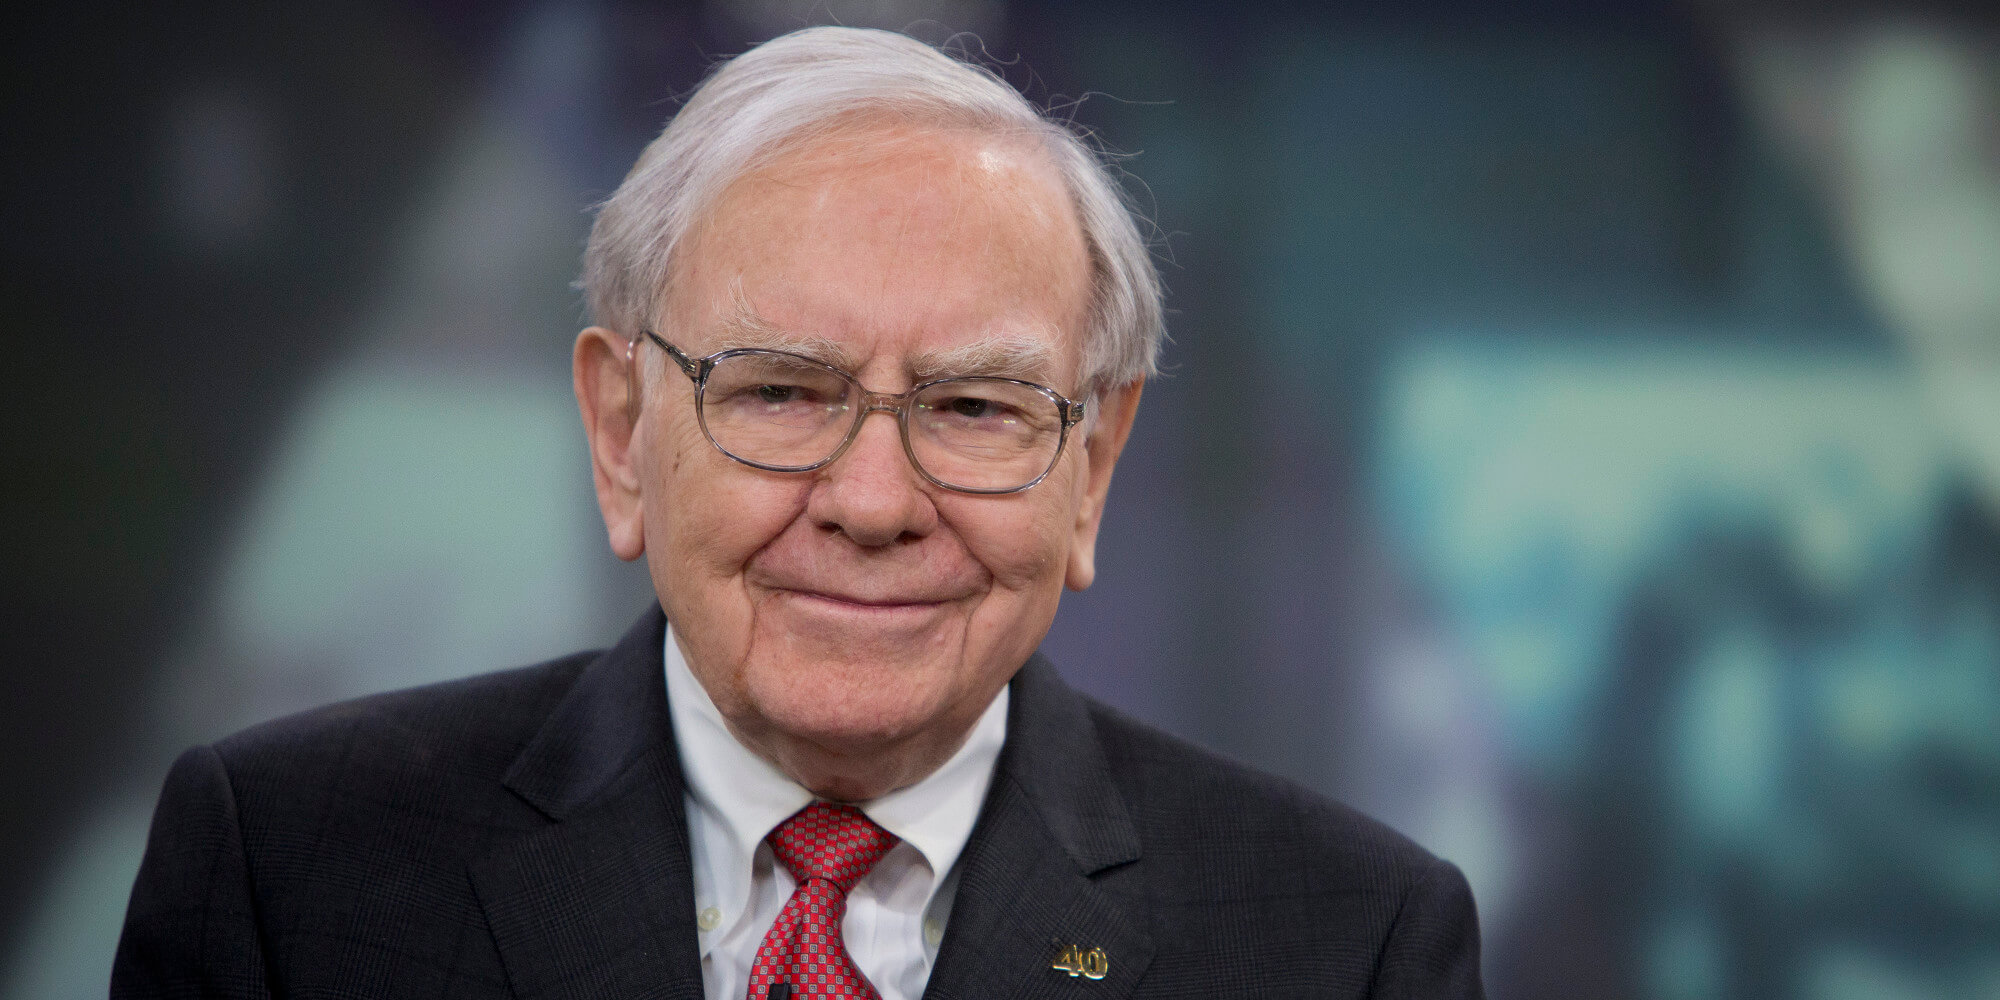 6 Things We Can Learn From Warren Buffett